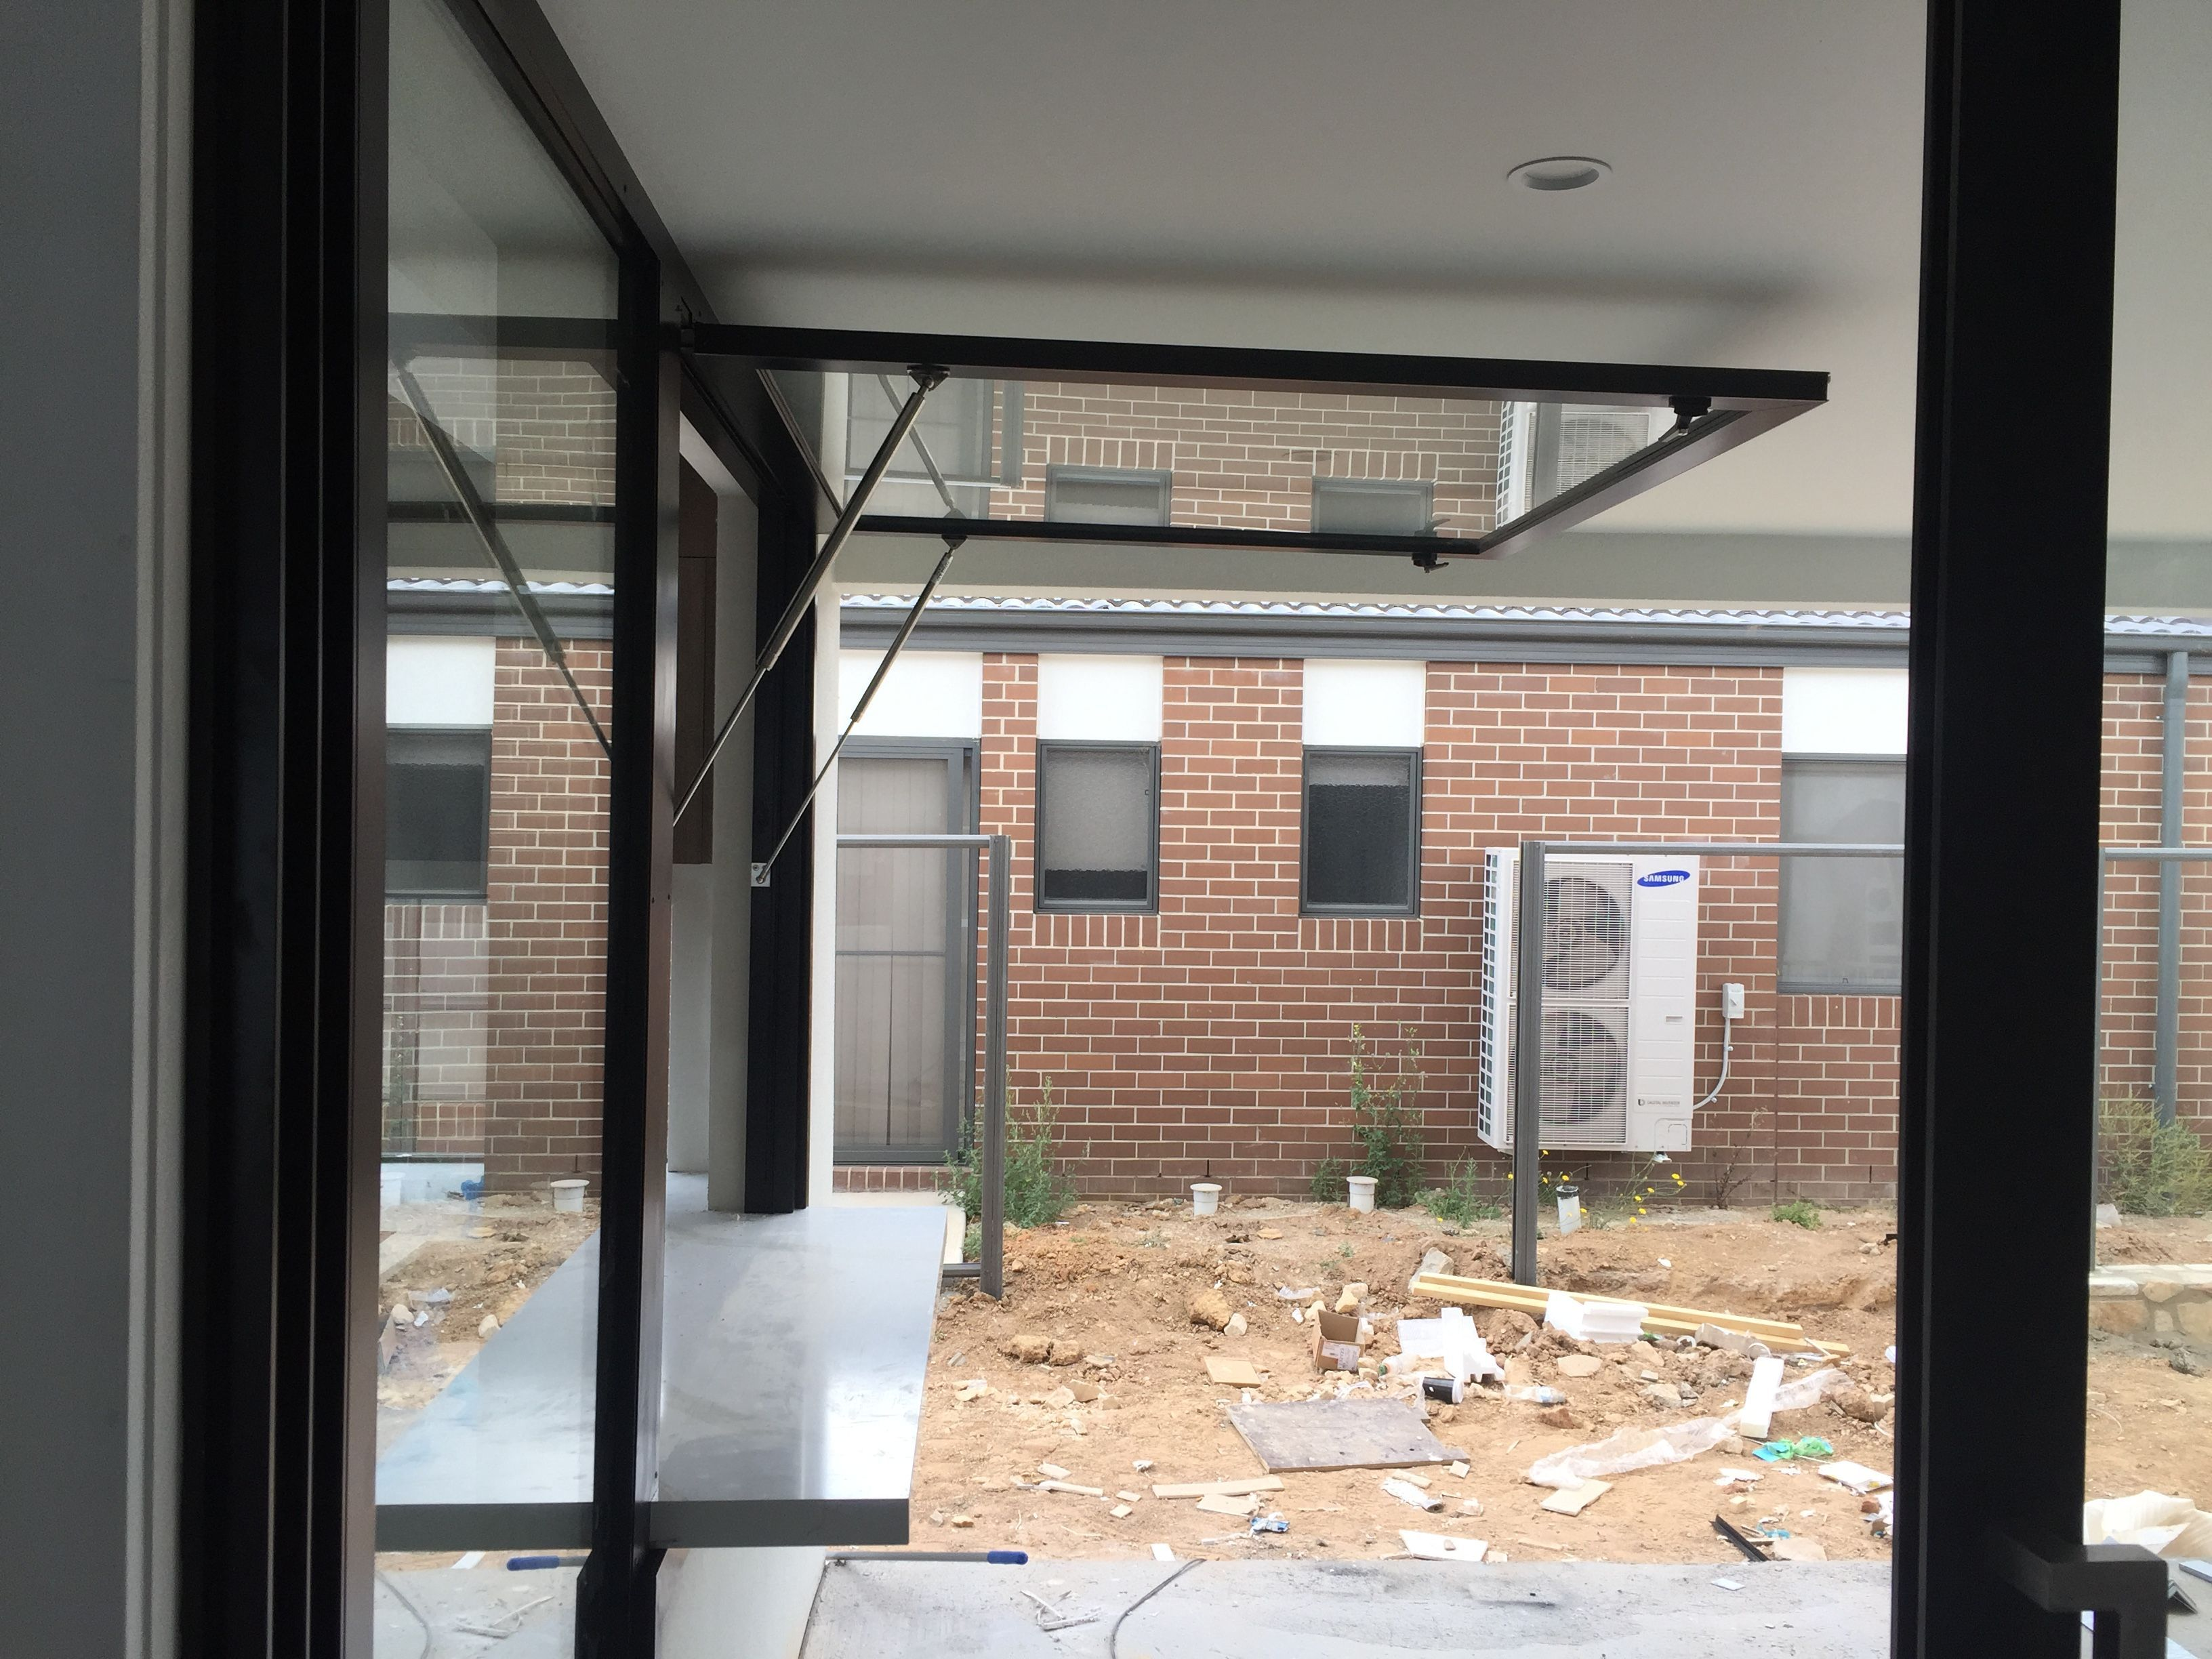 A Side View Of The Cga Gas Strutted Awning Window